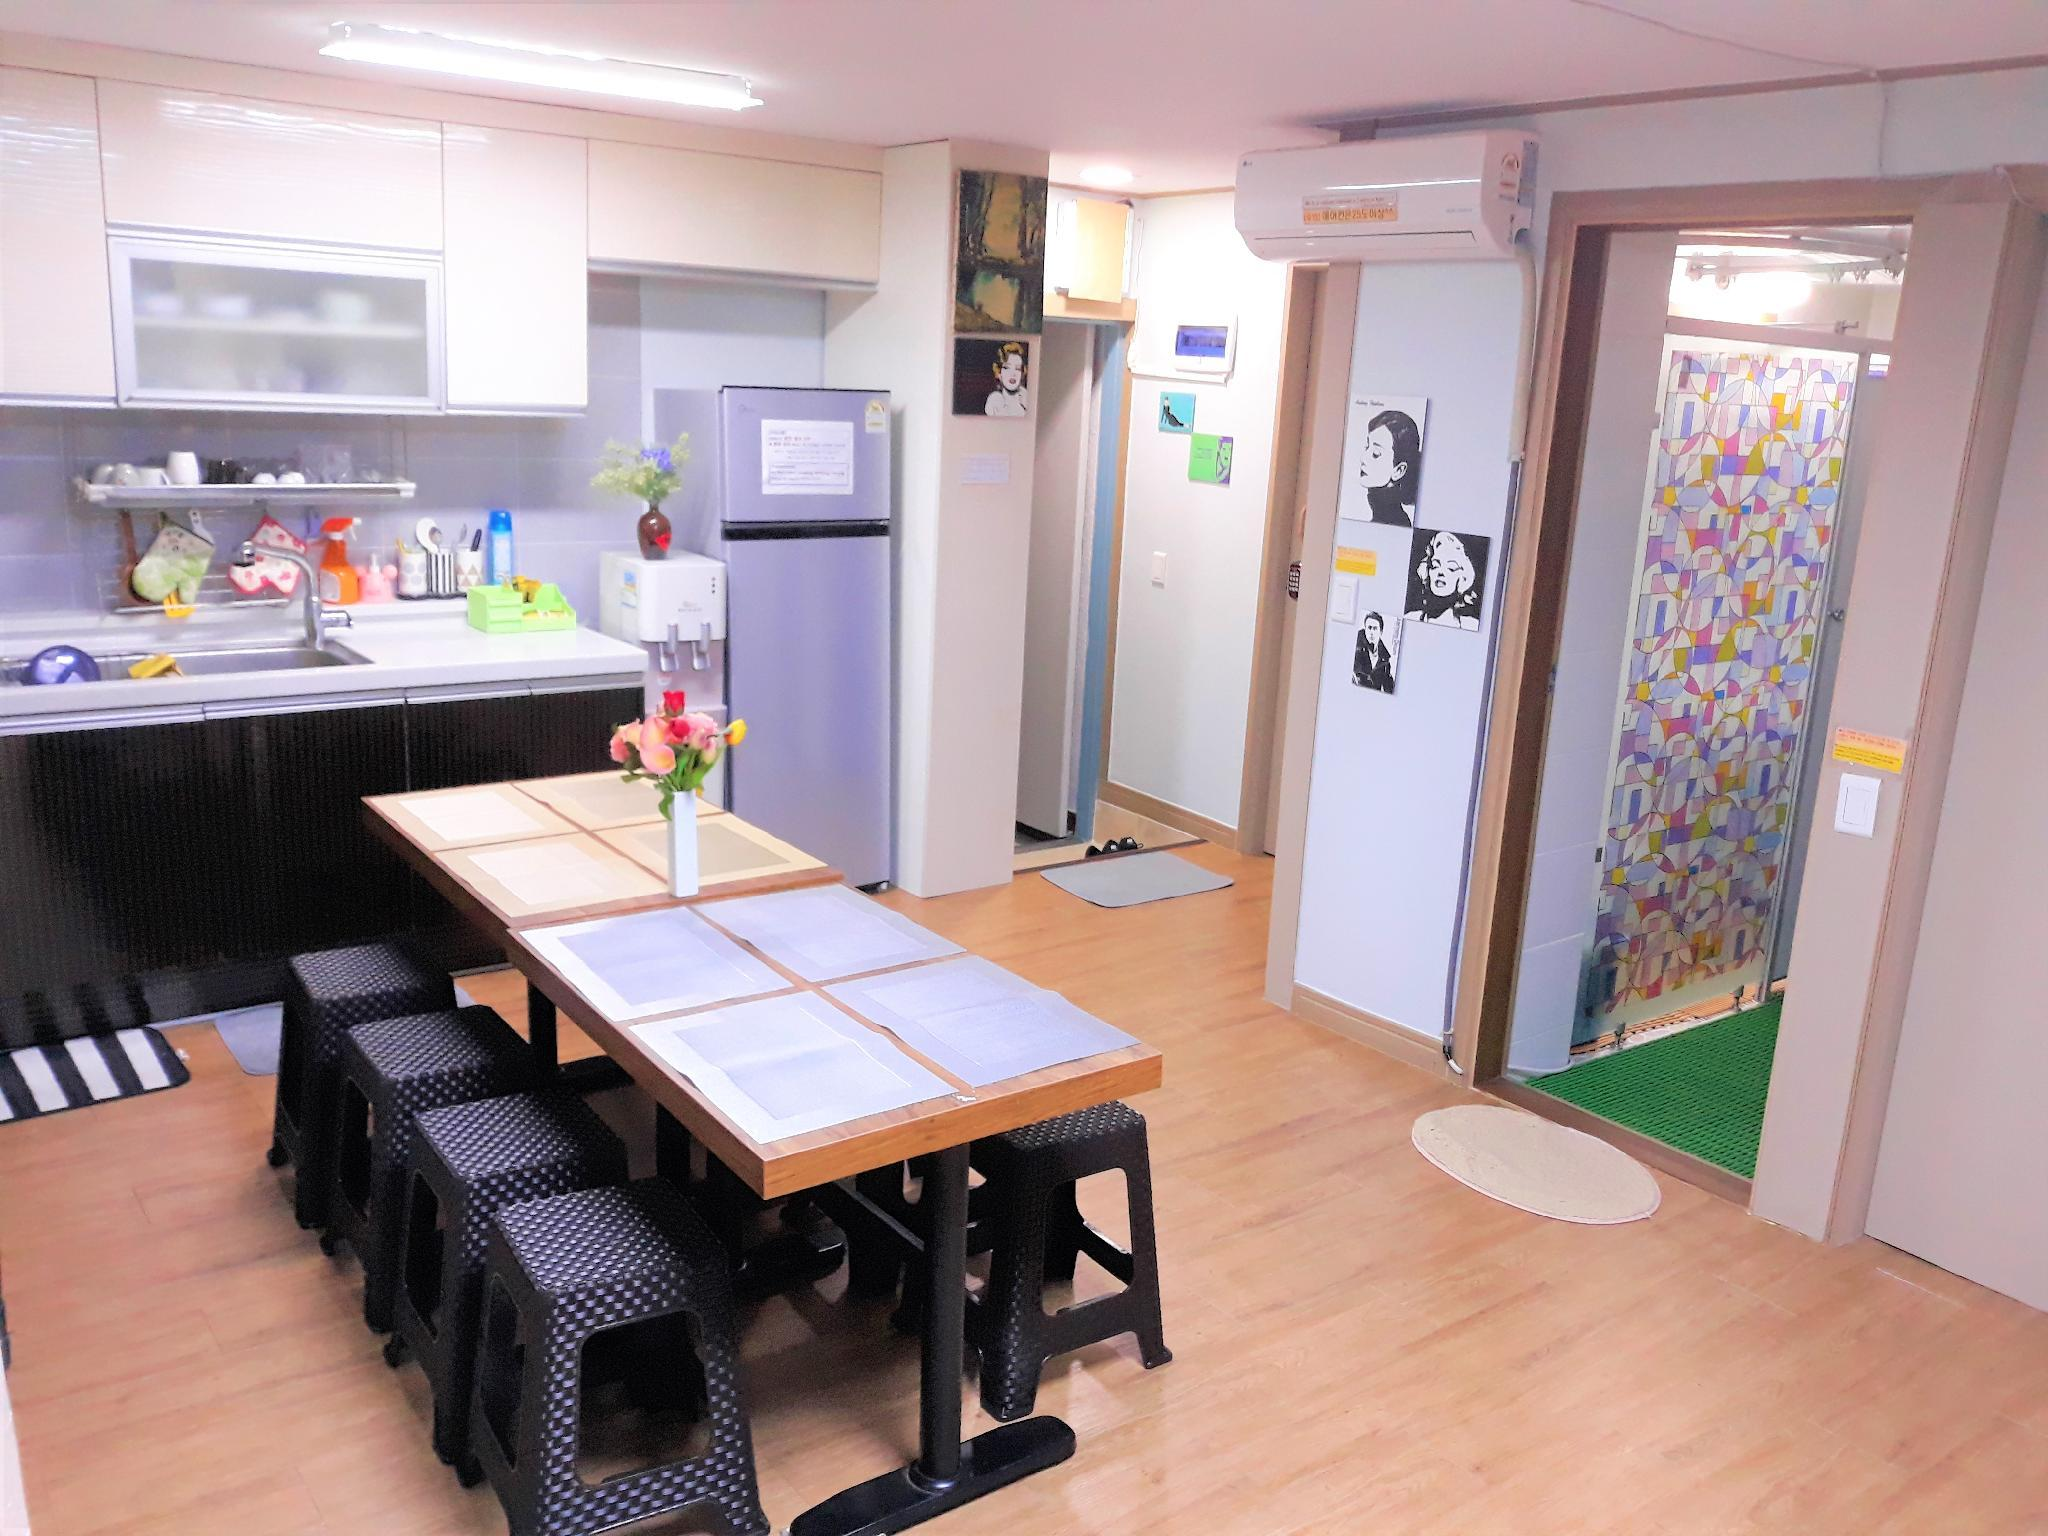 BUSAN.ST WLB GUEST HOUSE Whole Space 5 6 Guests